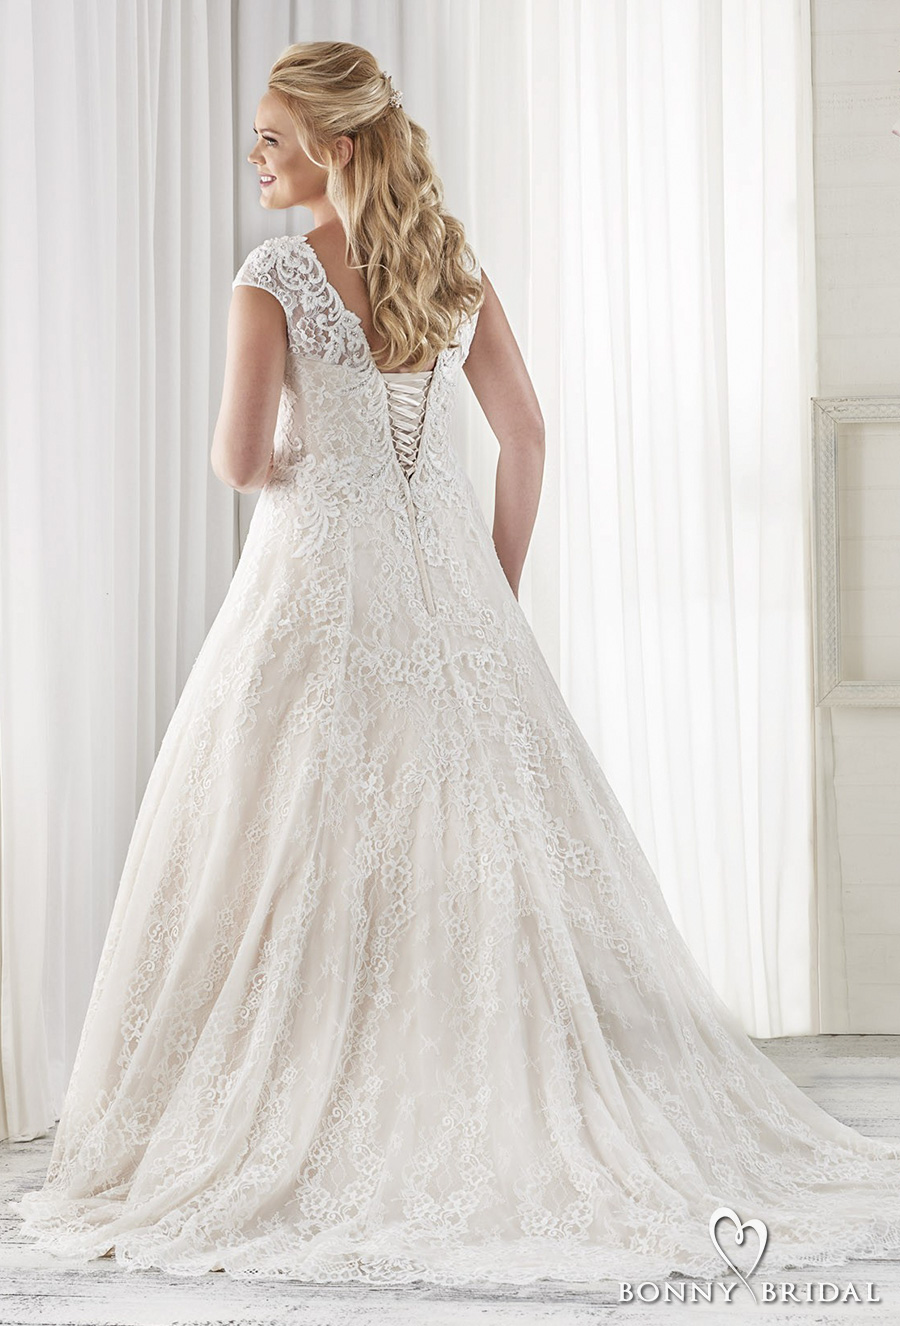 Bonny bridal wedding dresses unforgettable styles for for Corset for wedding dress plus size